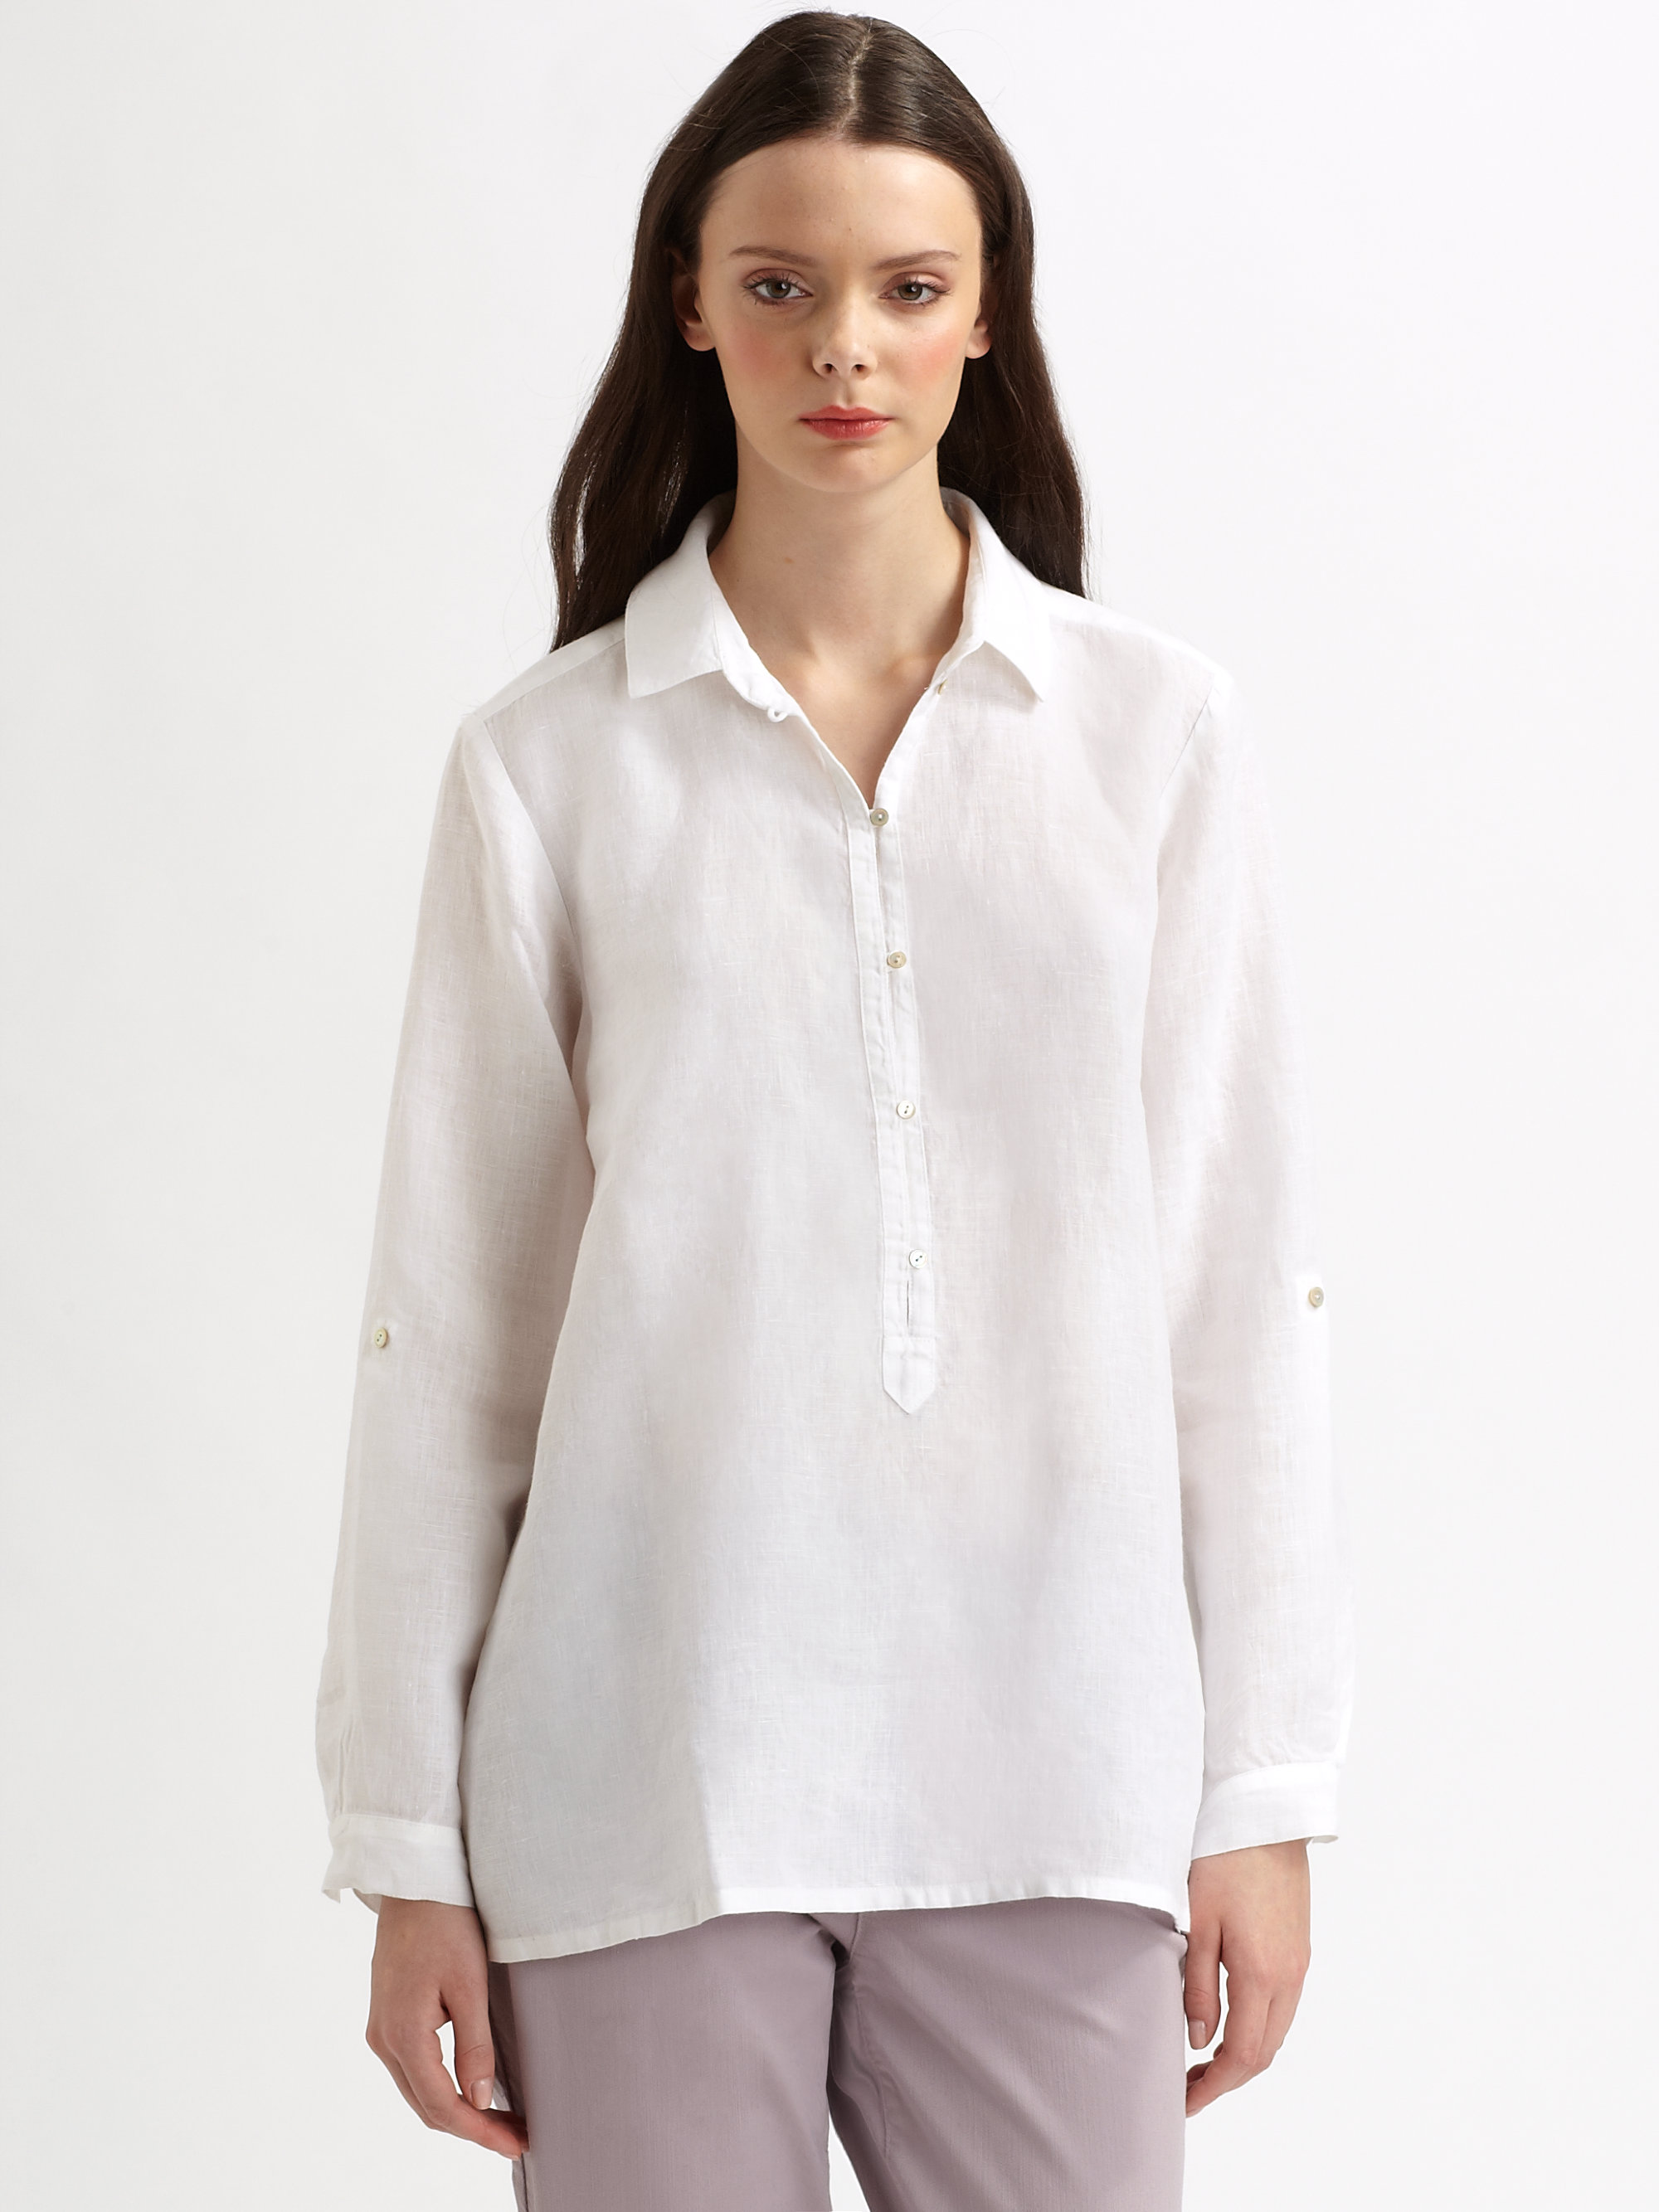 Eileen fisher Irish Linen Pullover Blouse in White | Lyst